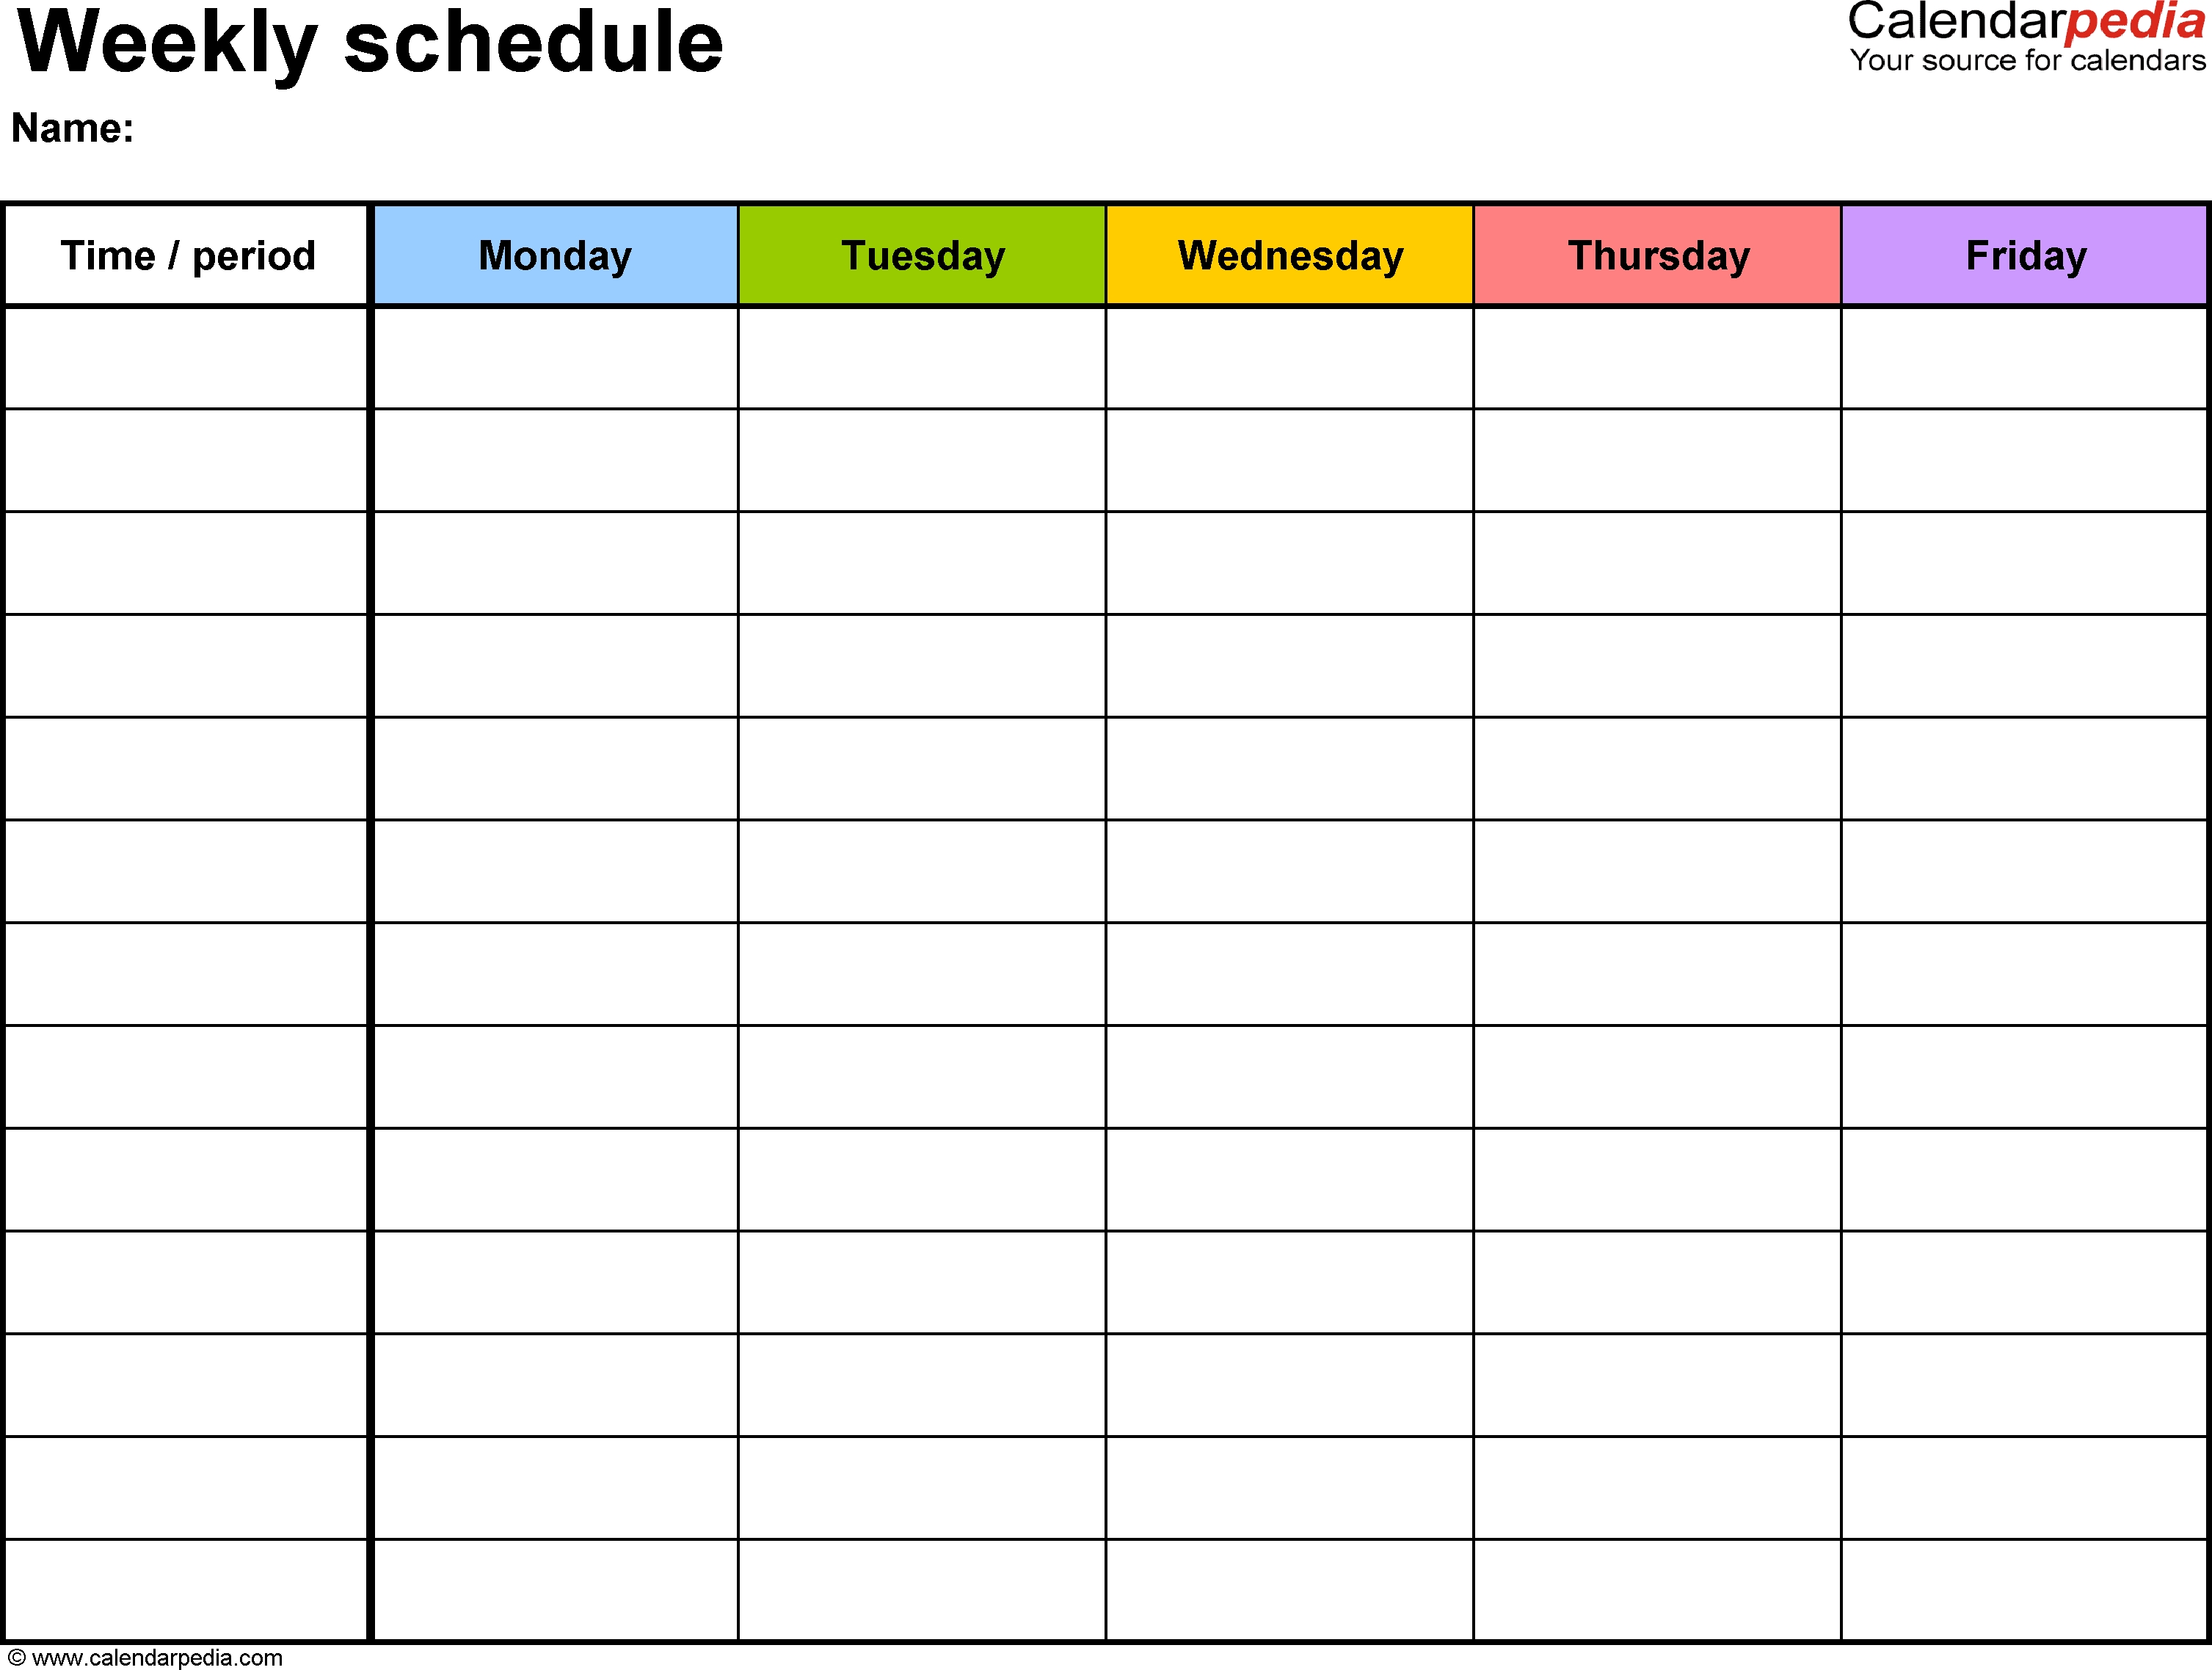 Free Weekly Schedule Templates For Word With Times Template Time regarding Weekly Calendar Template With Time Slots